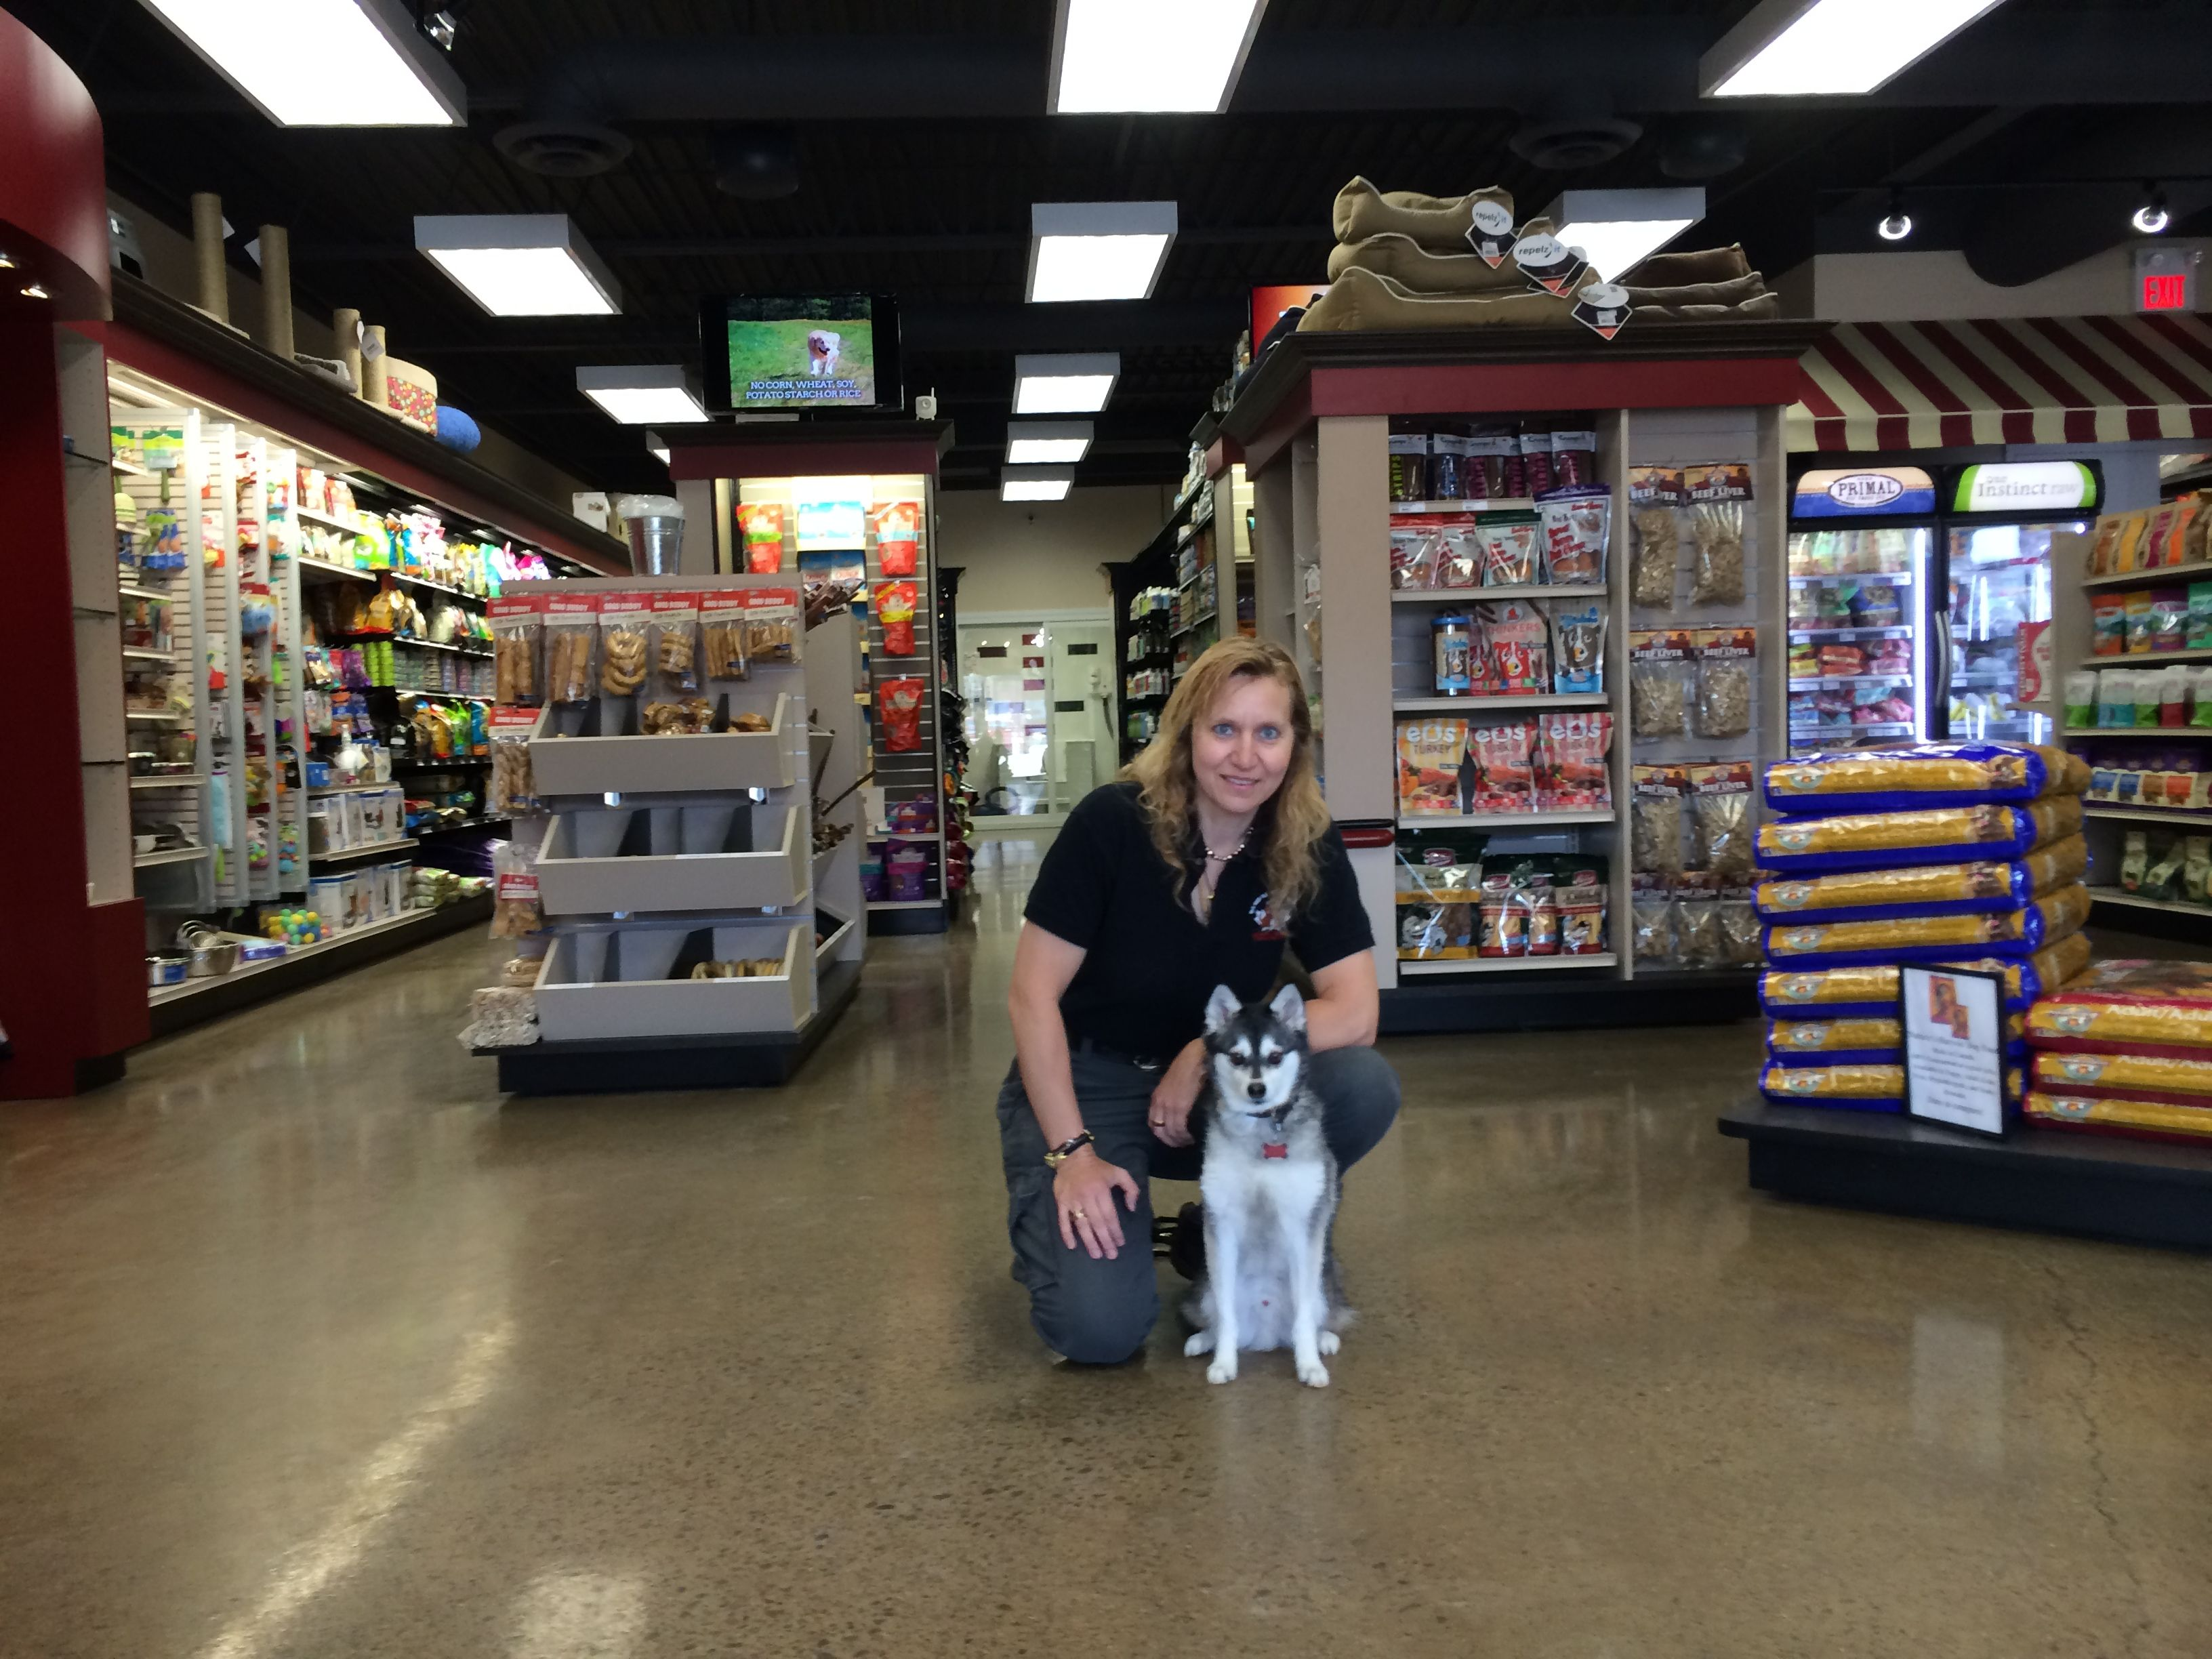 Franchisee Pet Food Store The Neighbourhood Pet Care